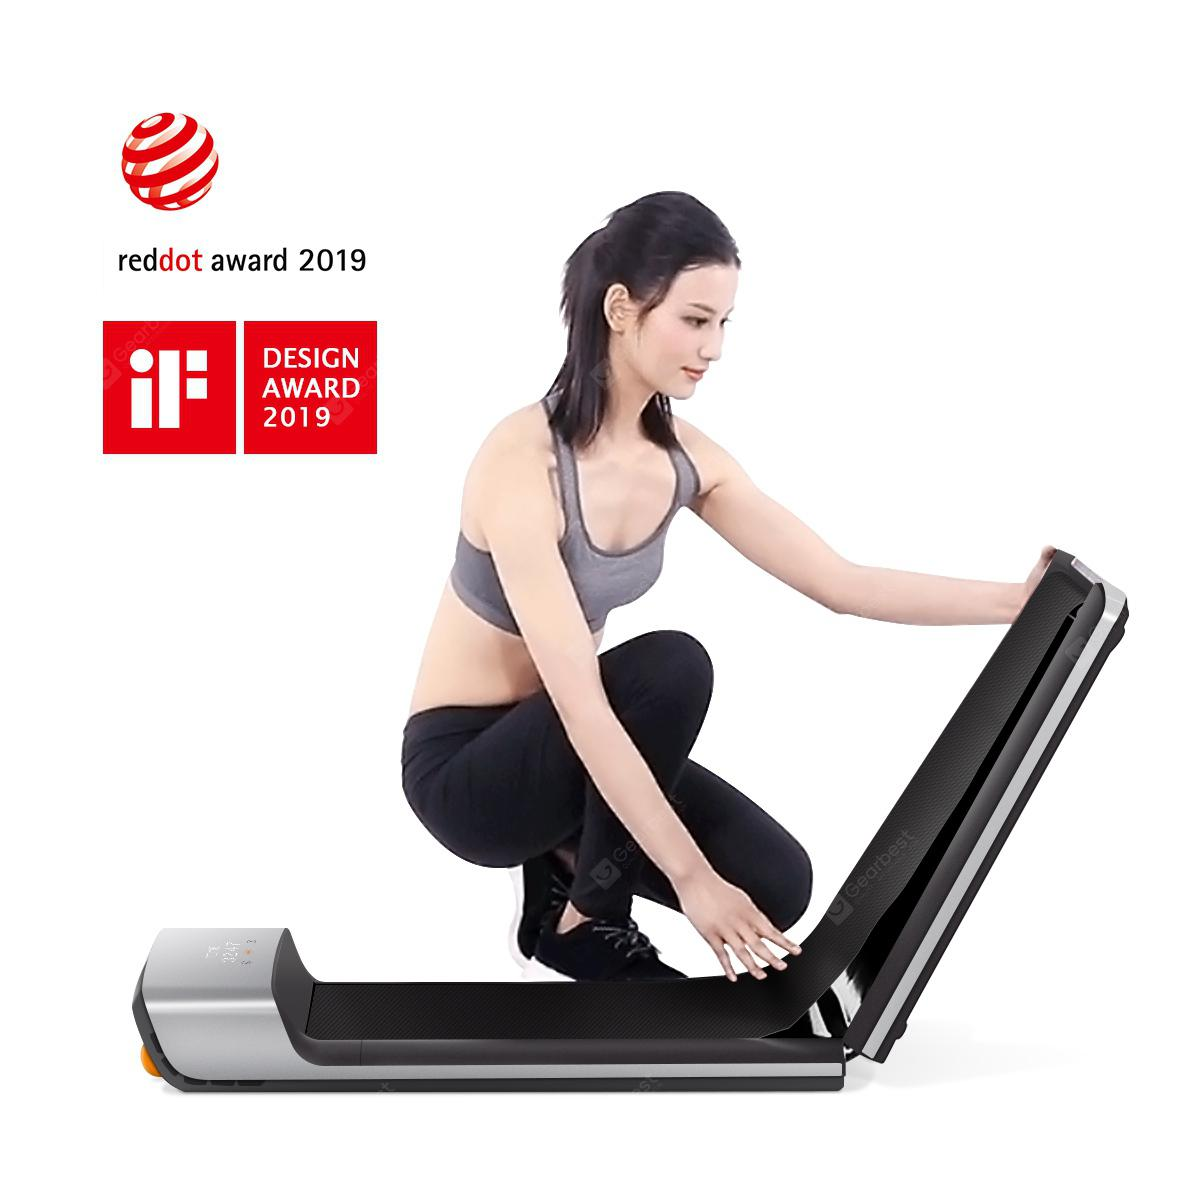 WalkingPad A1 Foldable Fitness Walking Machine Remote Control Easy To Store from Xiaomi youpin - Gray Poland